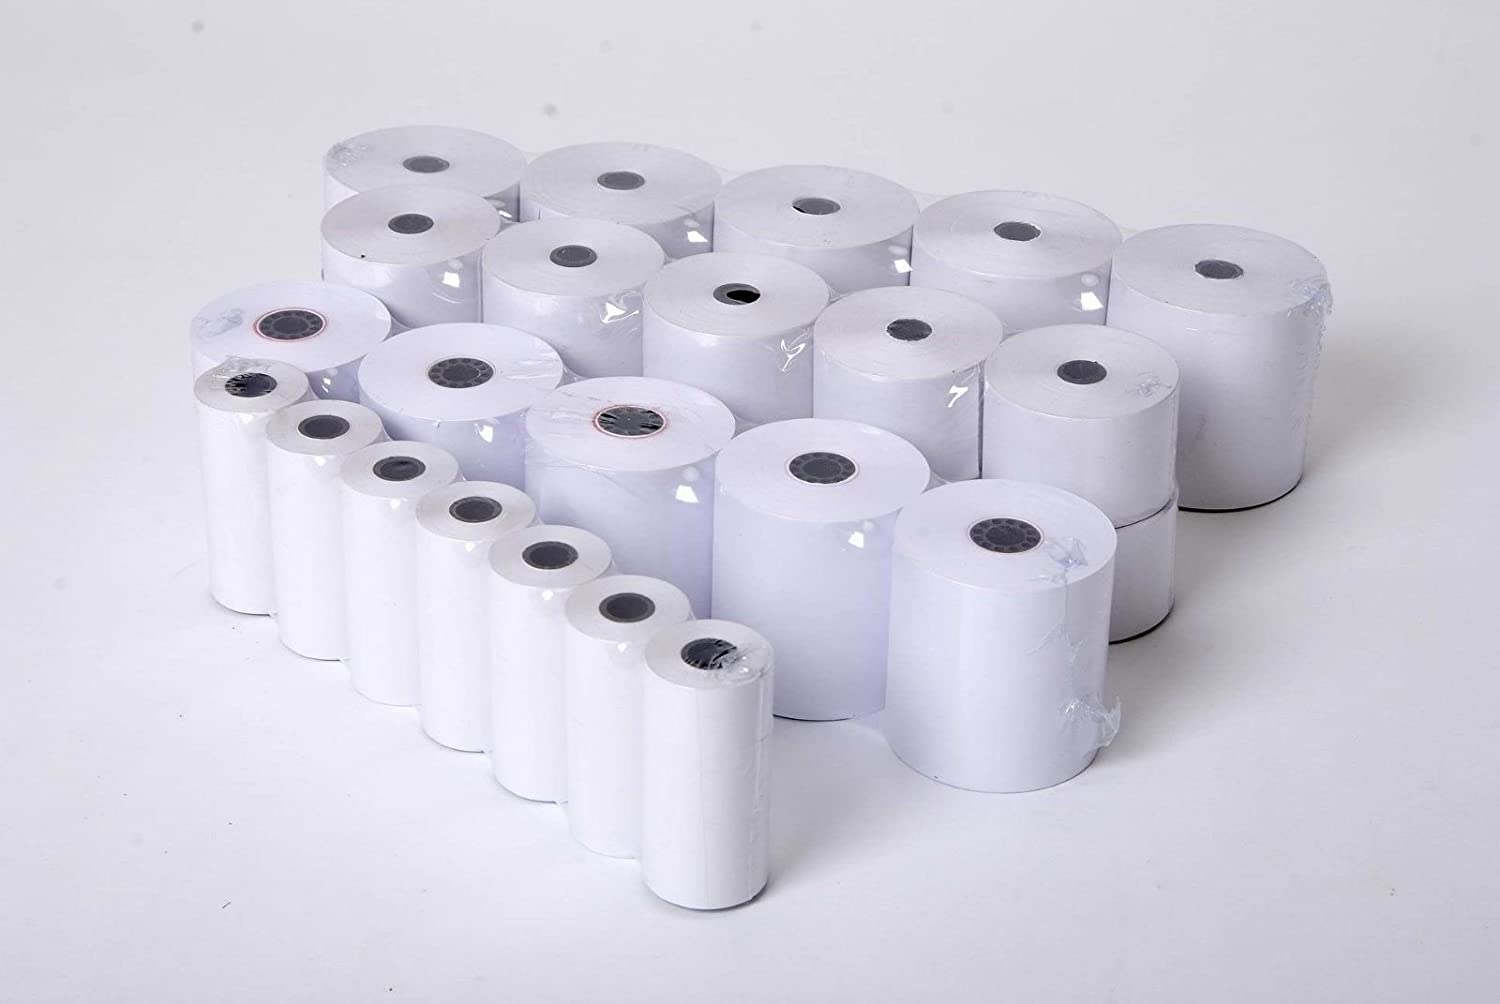 20 pcs SMCO Thermo Roles 57 mm X 40 MM X 12 mm for Star TSP 200 Till Rolls